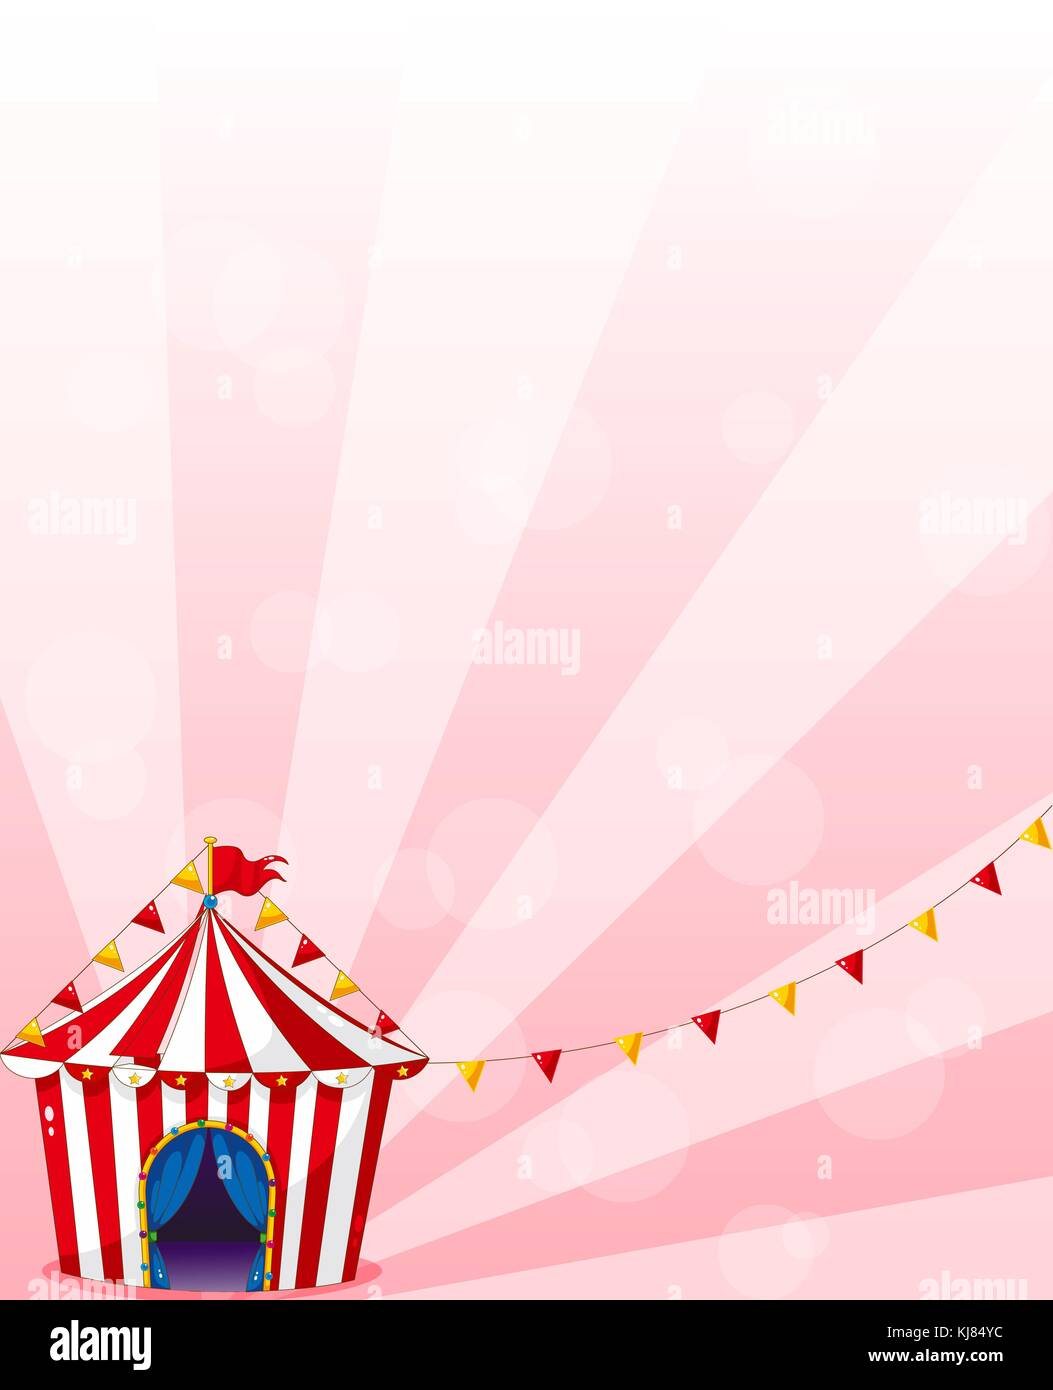 Illustration of a red circus tent with banners - Stock Vector